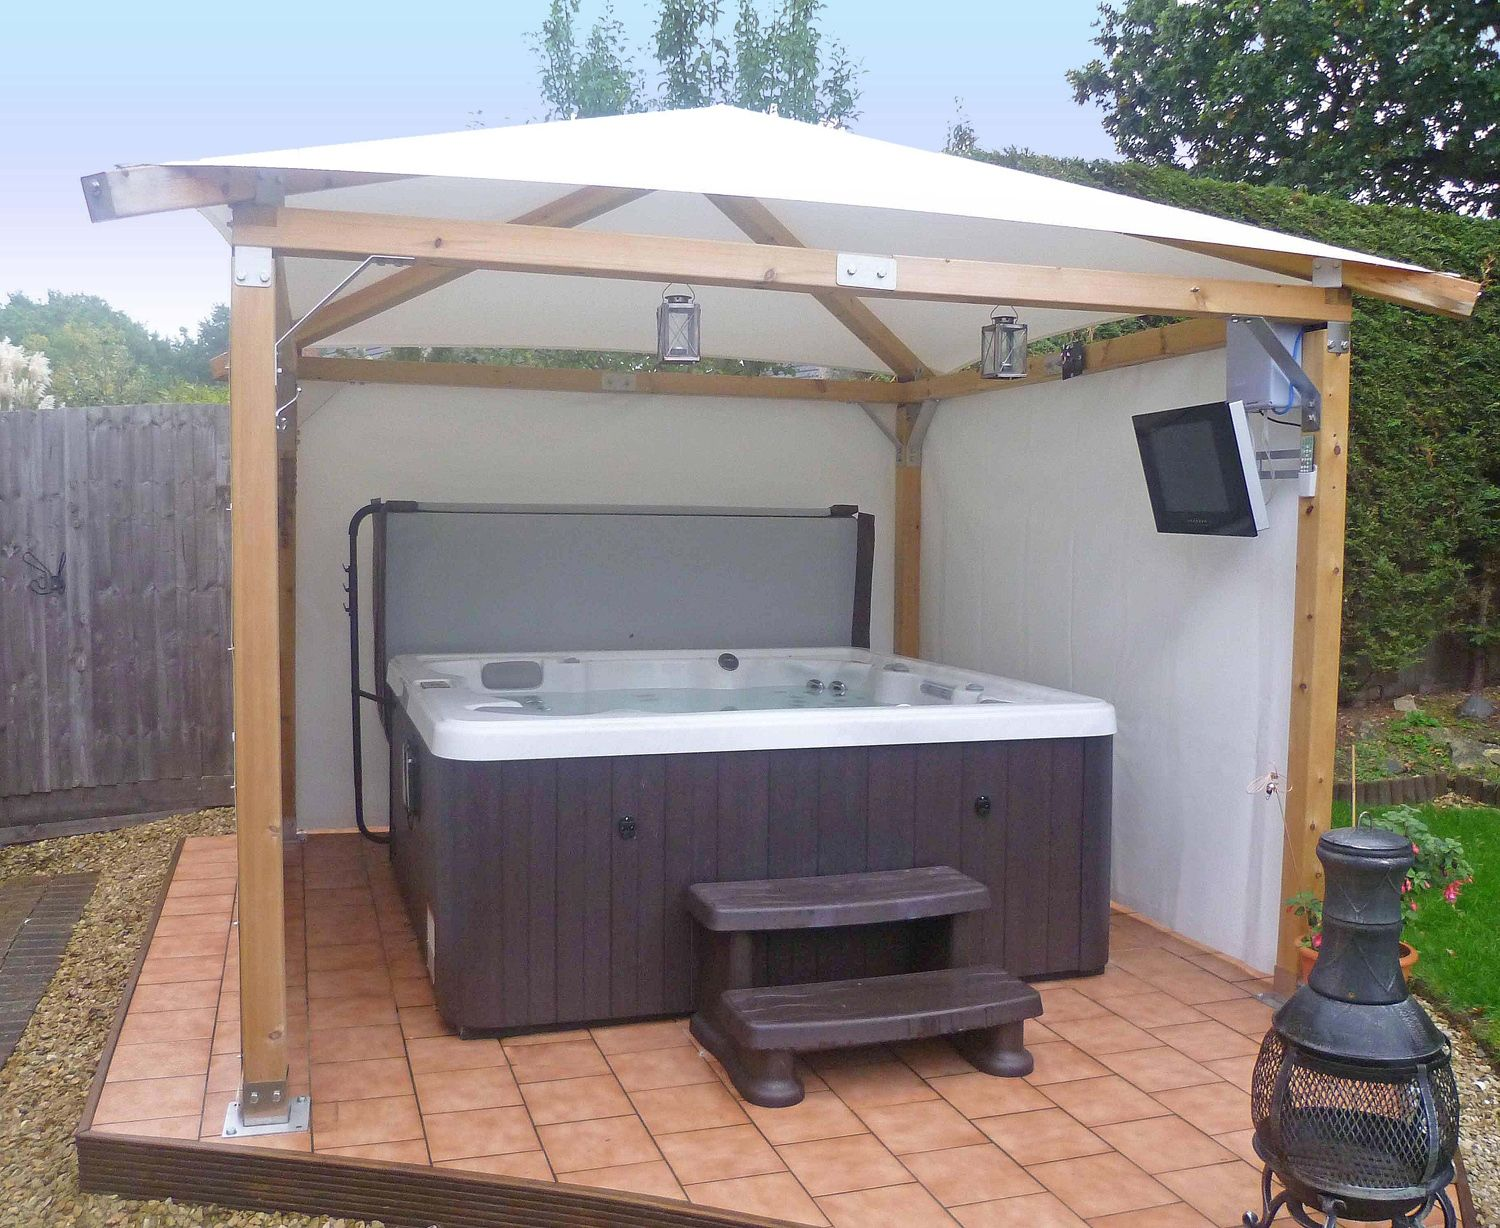 Swim Spa Gazebo Plans Hot Tub Privacy Hot Tub Gazebo Hot Tub Cover